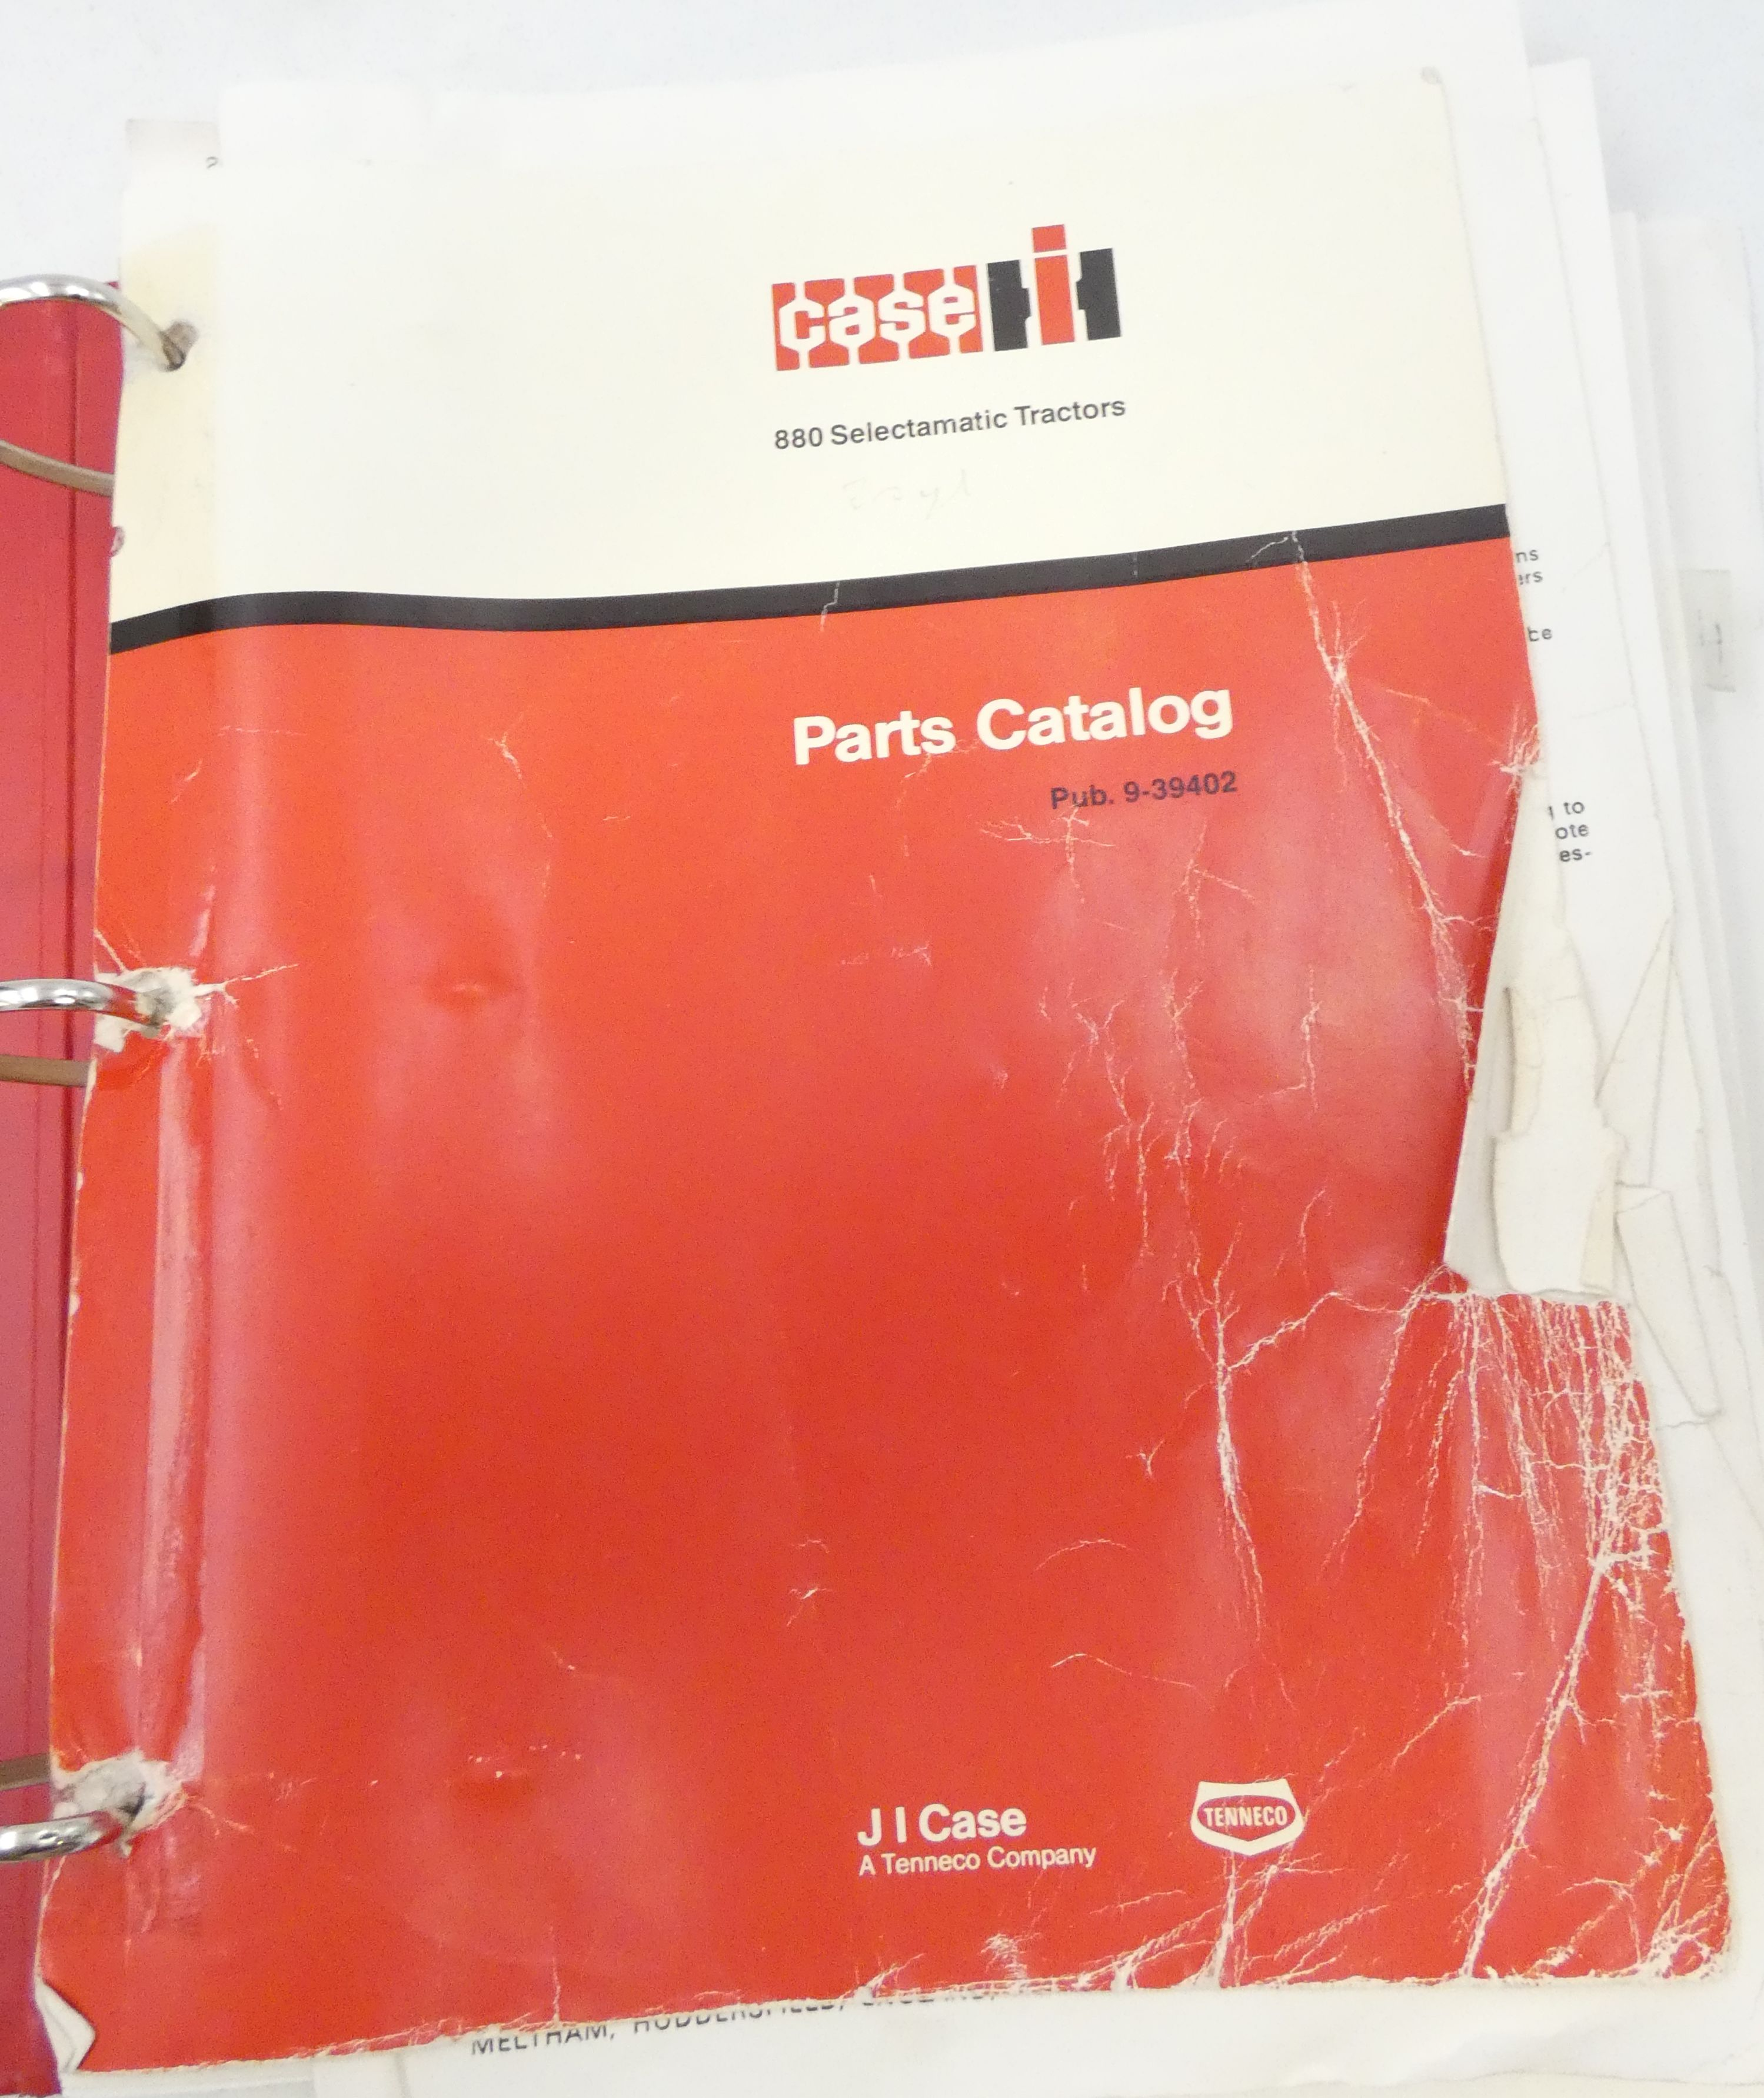 CaseIH 880 Selectamatic tractors parts catalog + David Brown 880 implematic and 880 implematic livedrive parts catalog + Case QD90 loader parts catalog